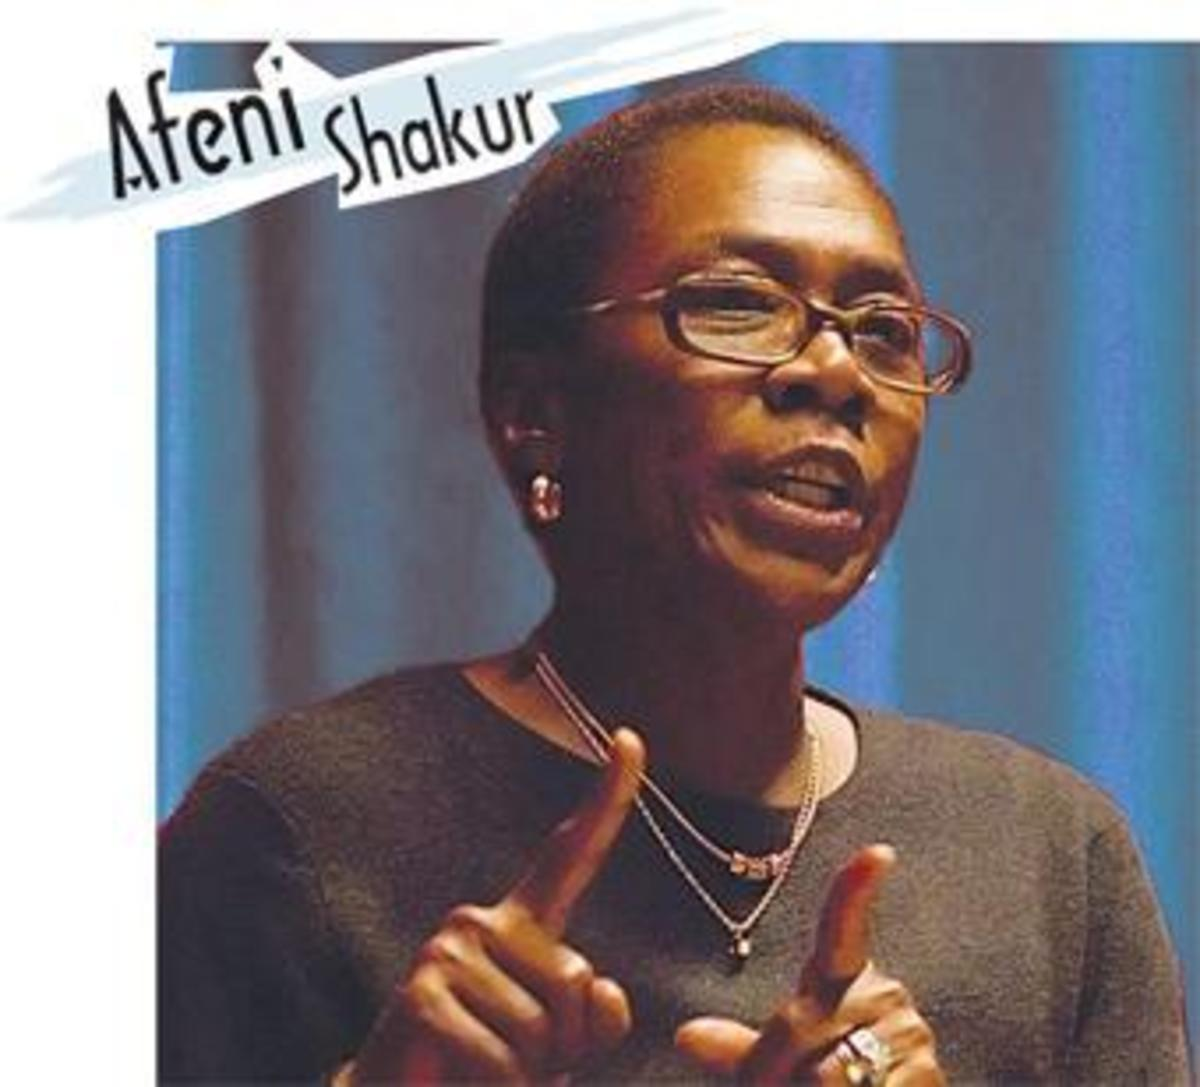 Afeni Shakur, Ex-Member of the Black Panther Party for Self Defense